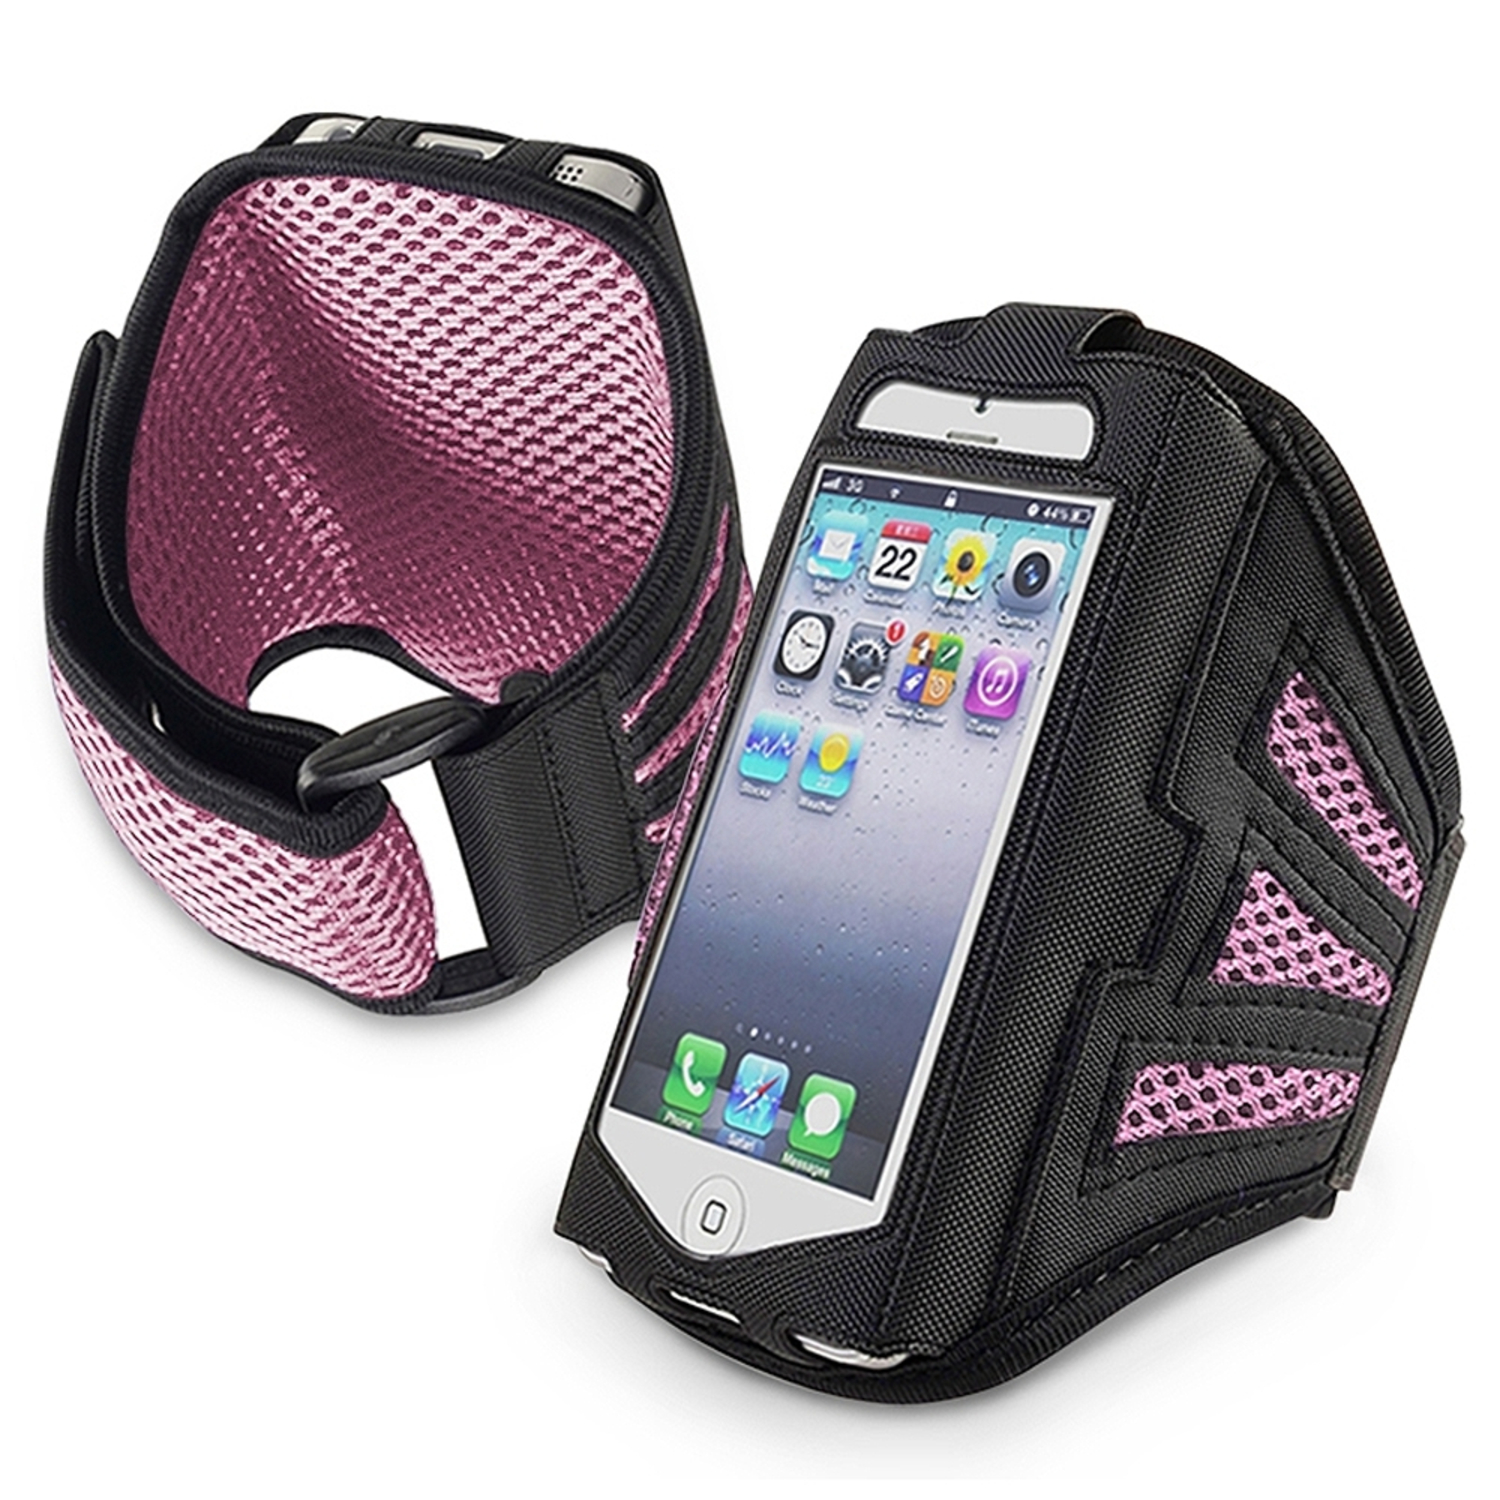 Insten Sports ArmBand Phone Holder Running Exercise Case Pouch For iPhone SE 5 5S 5C iPod Touch 6th 6 5th Gen Pink/Black